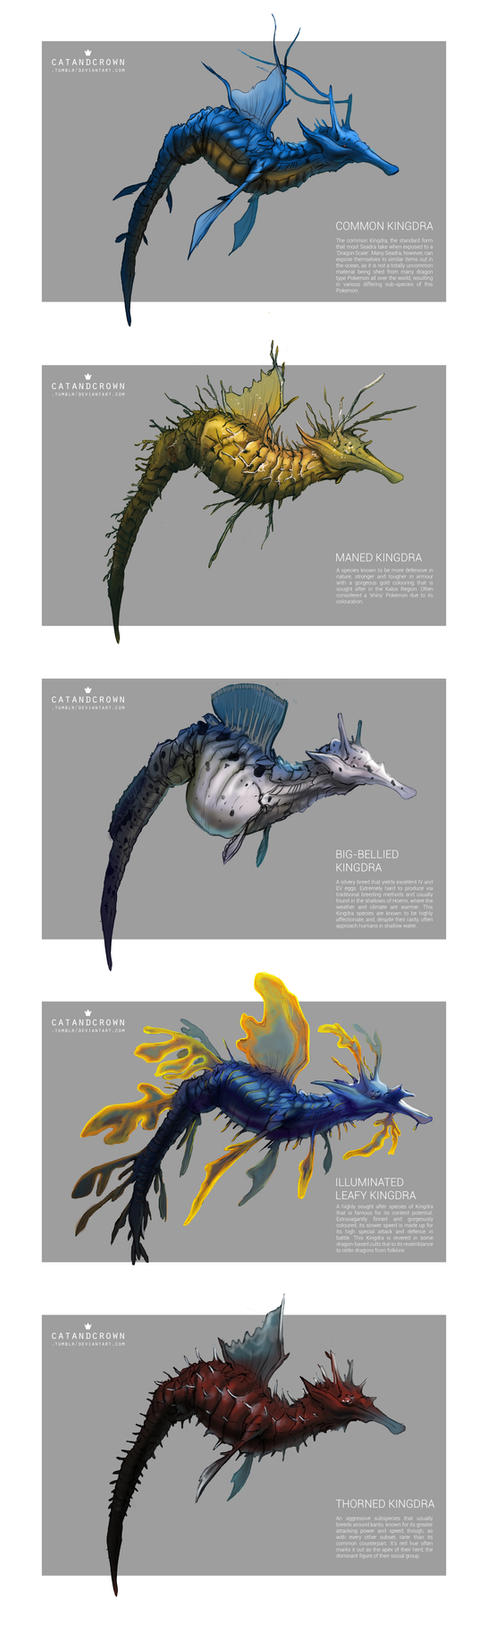 Pokemon Morphology - Kingdra by catandcrown